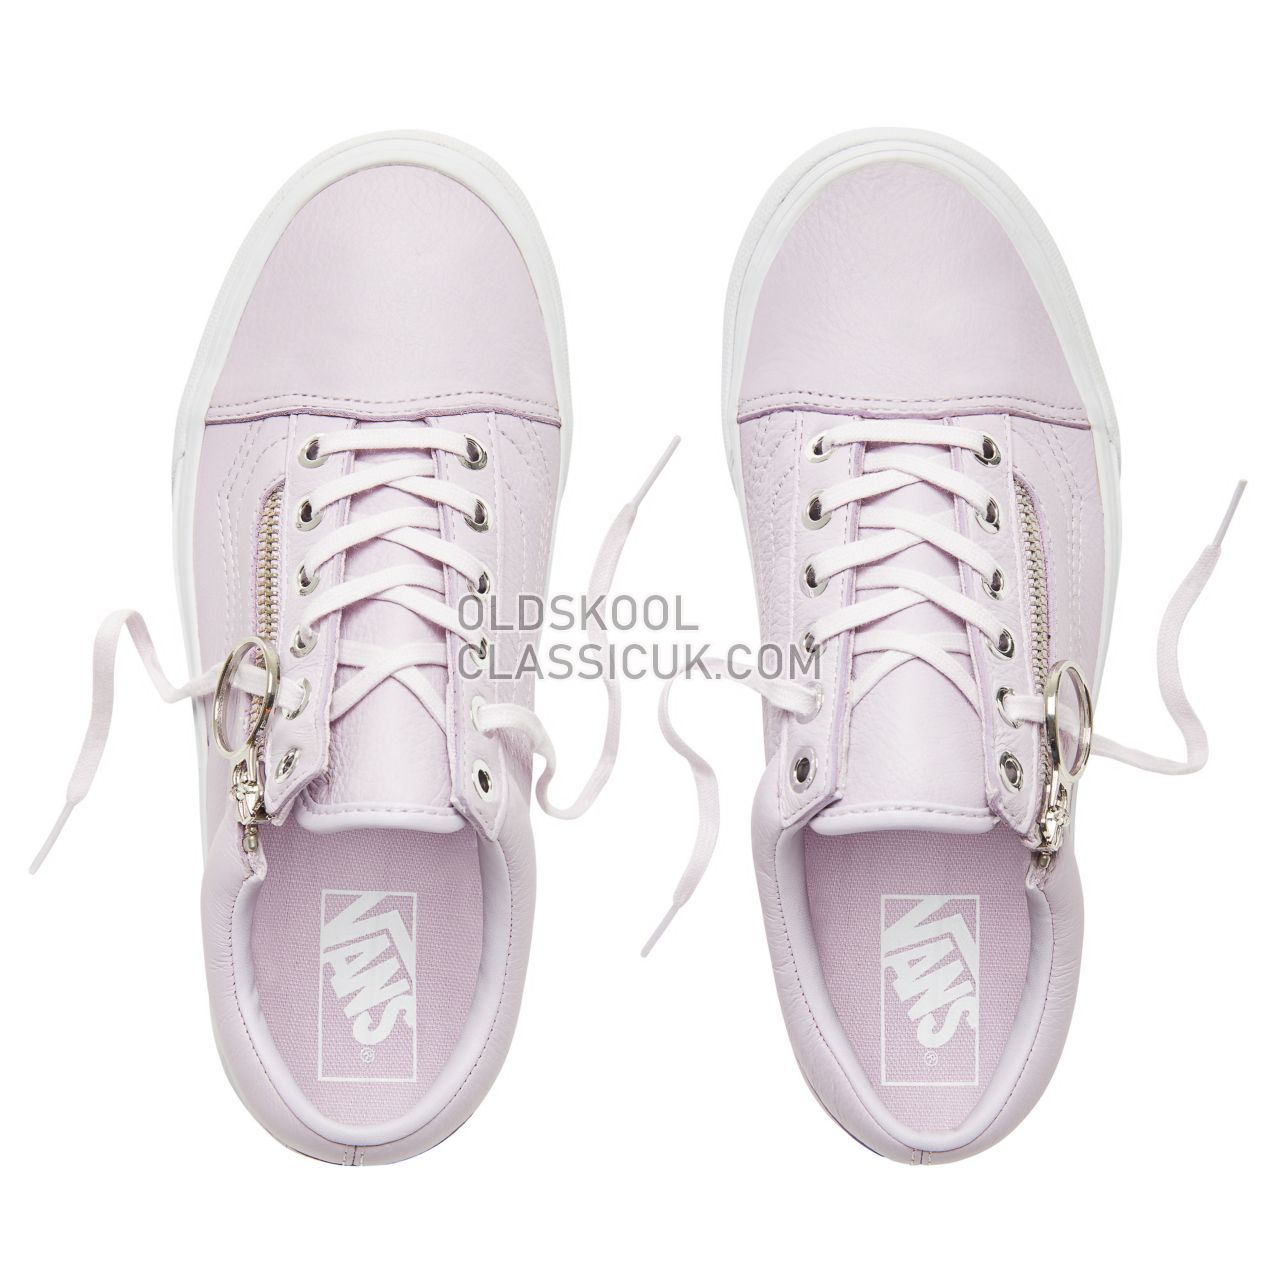 Vans Metal Hardware Old Skool Zip Sneakers Womens (Metal Hardware) Lavender Fog/True White VA3493UB9 Shoes